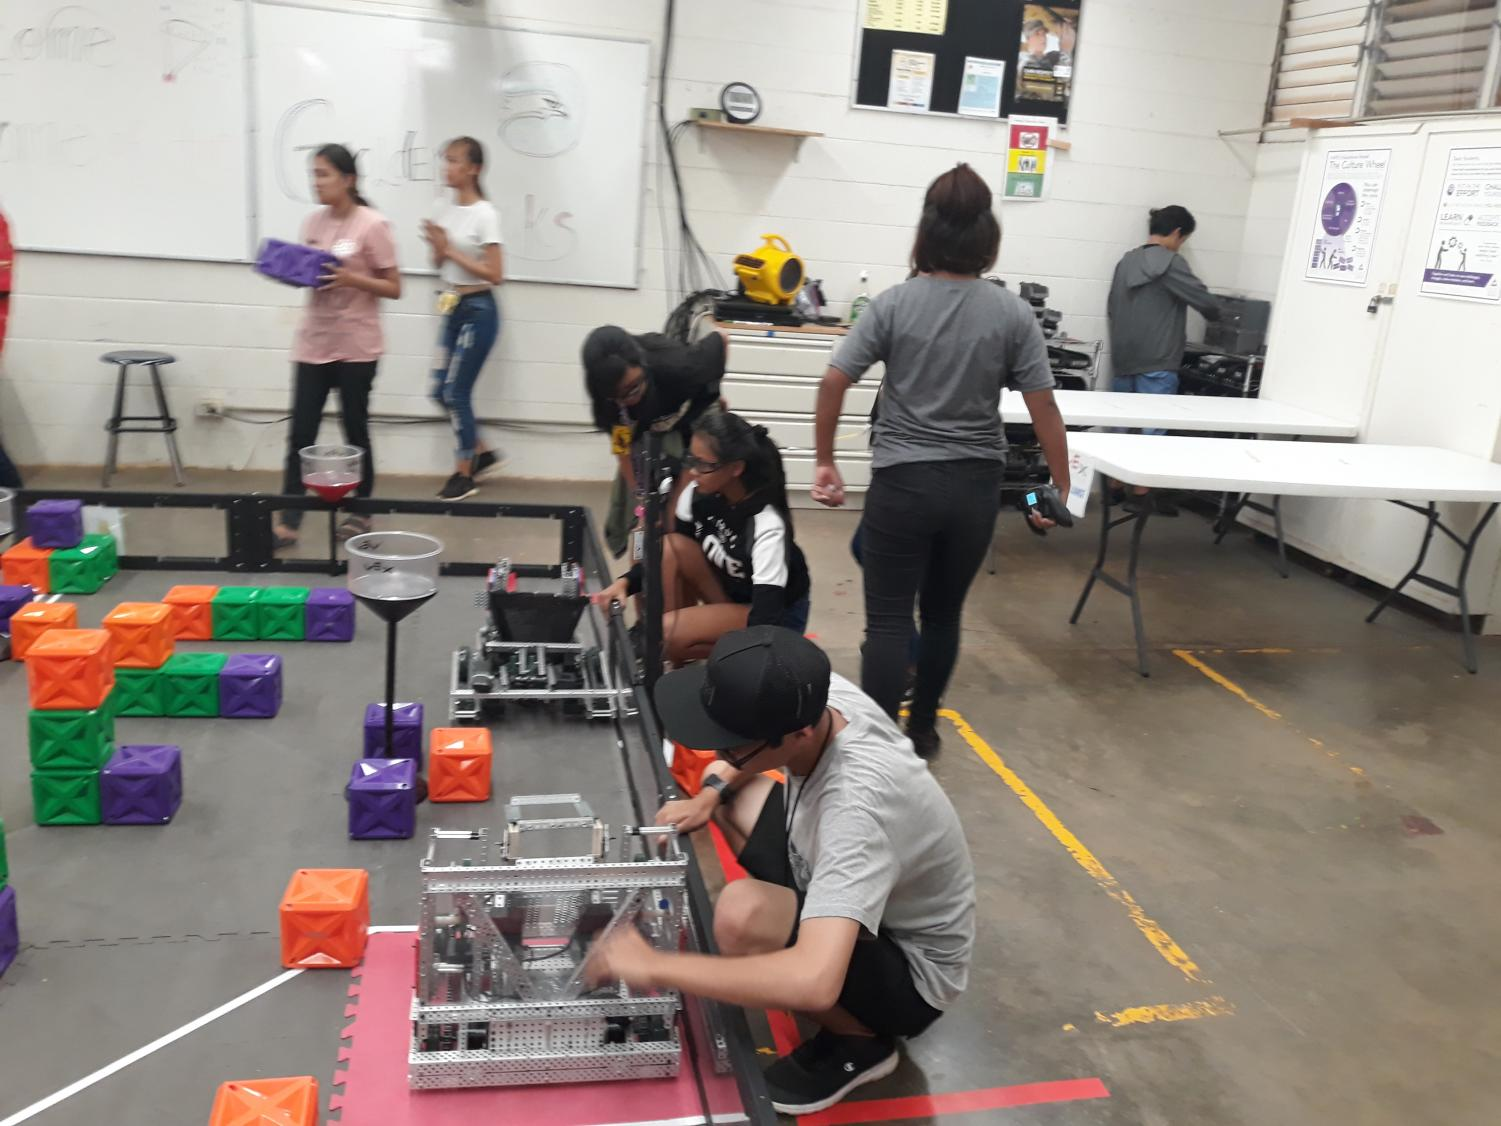 Robotics would be one class that students would take under the Design Academy next school year.